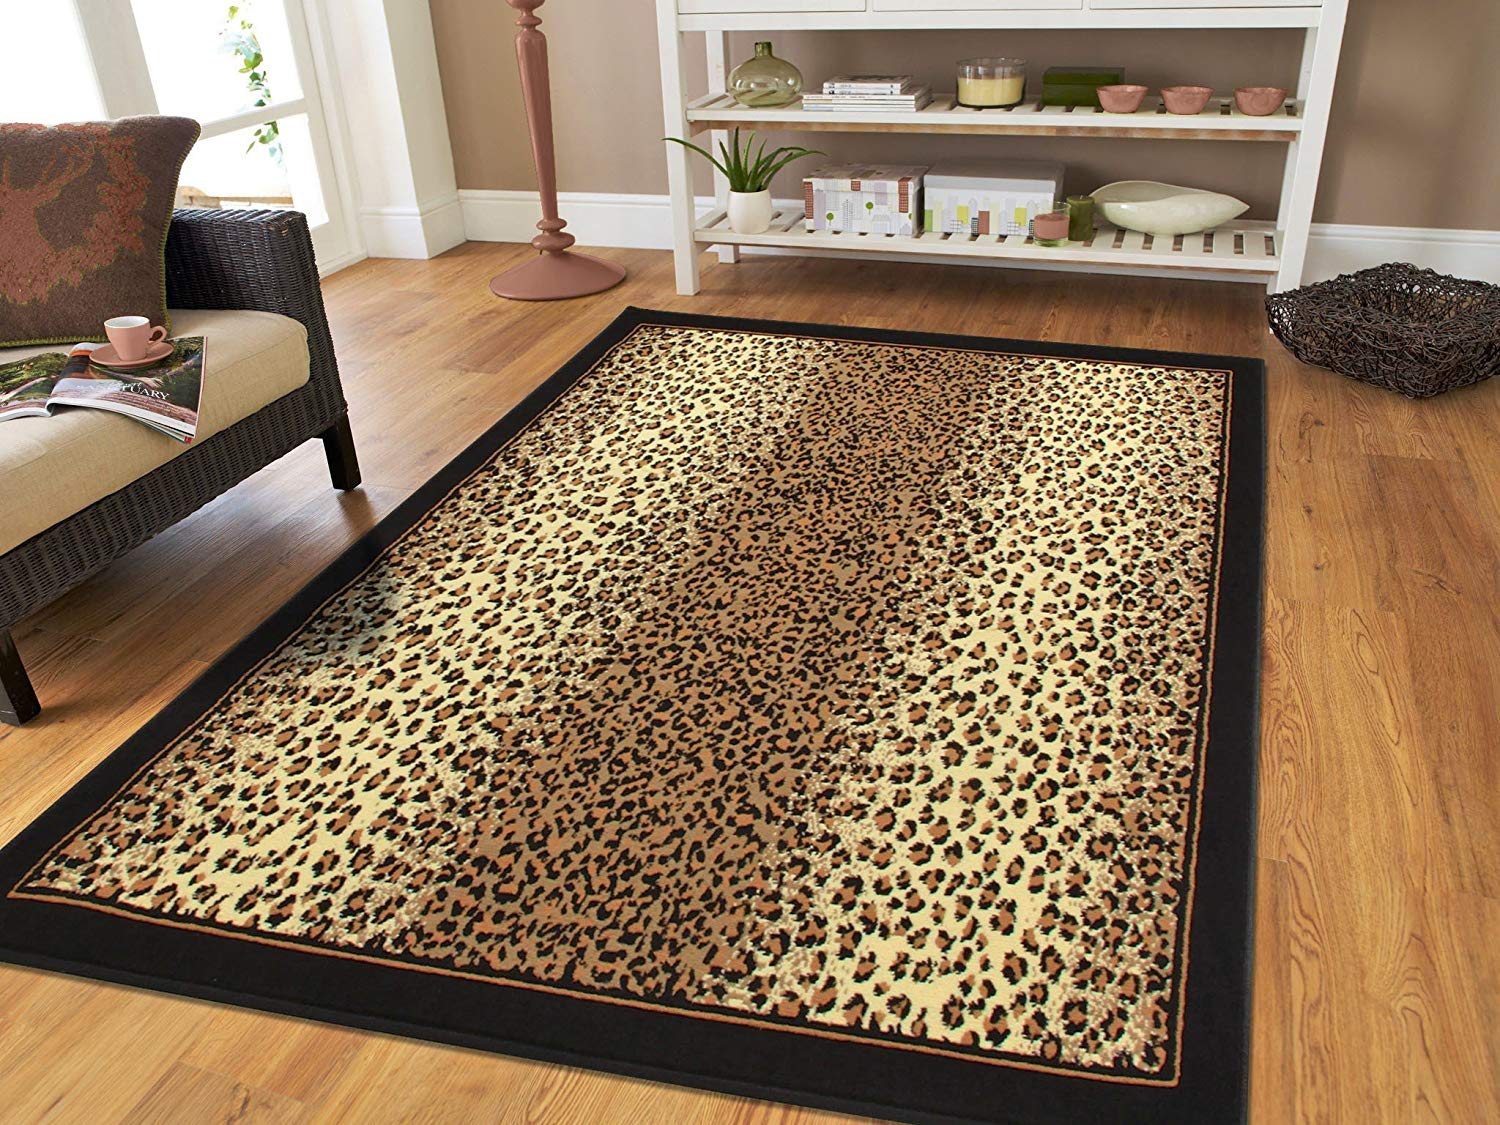 Beauty of the animal rugs: leopard rug